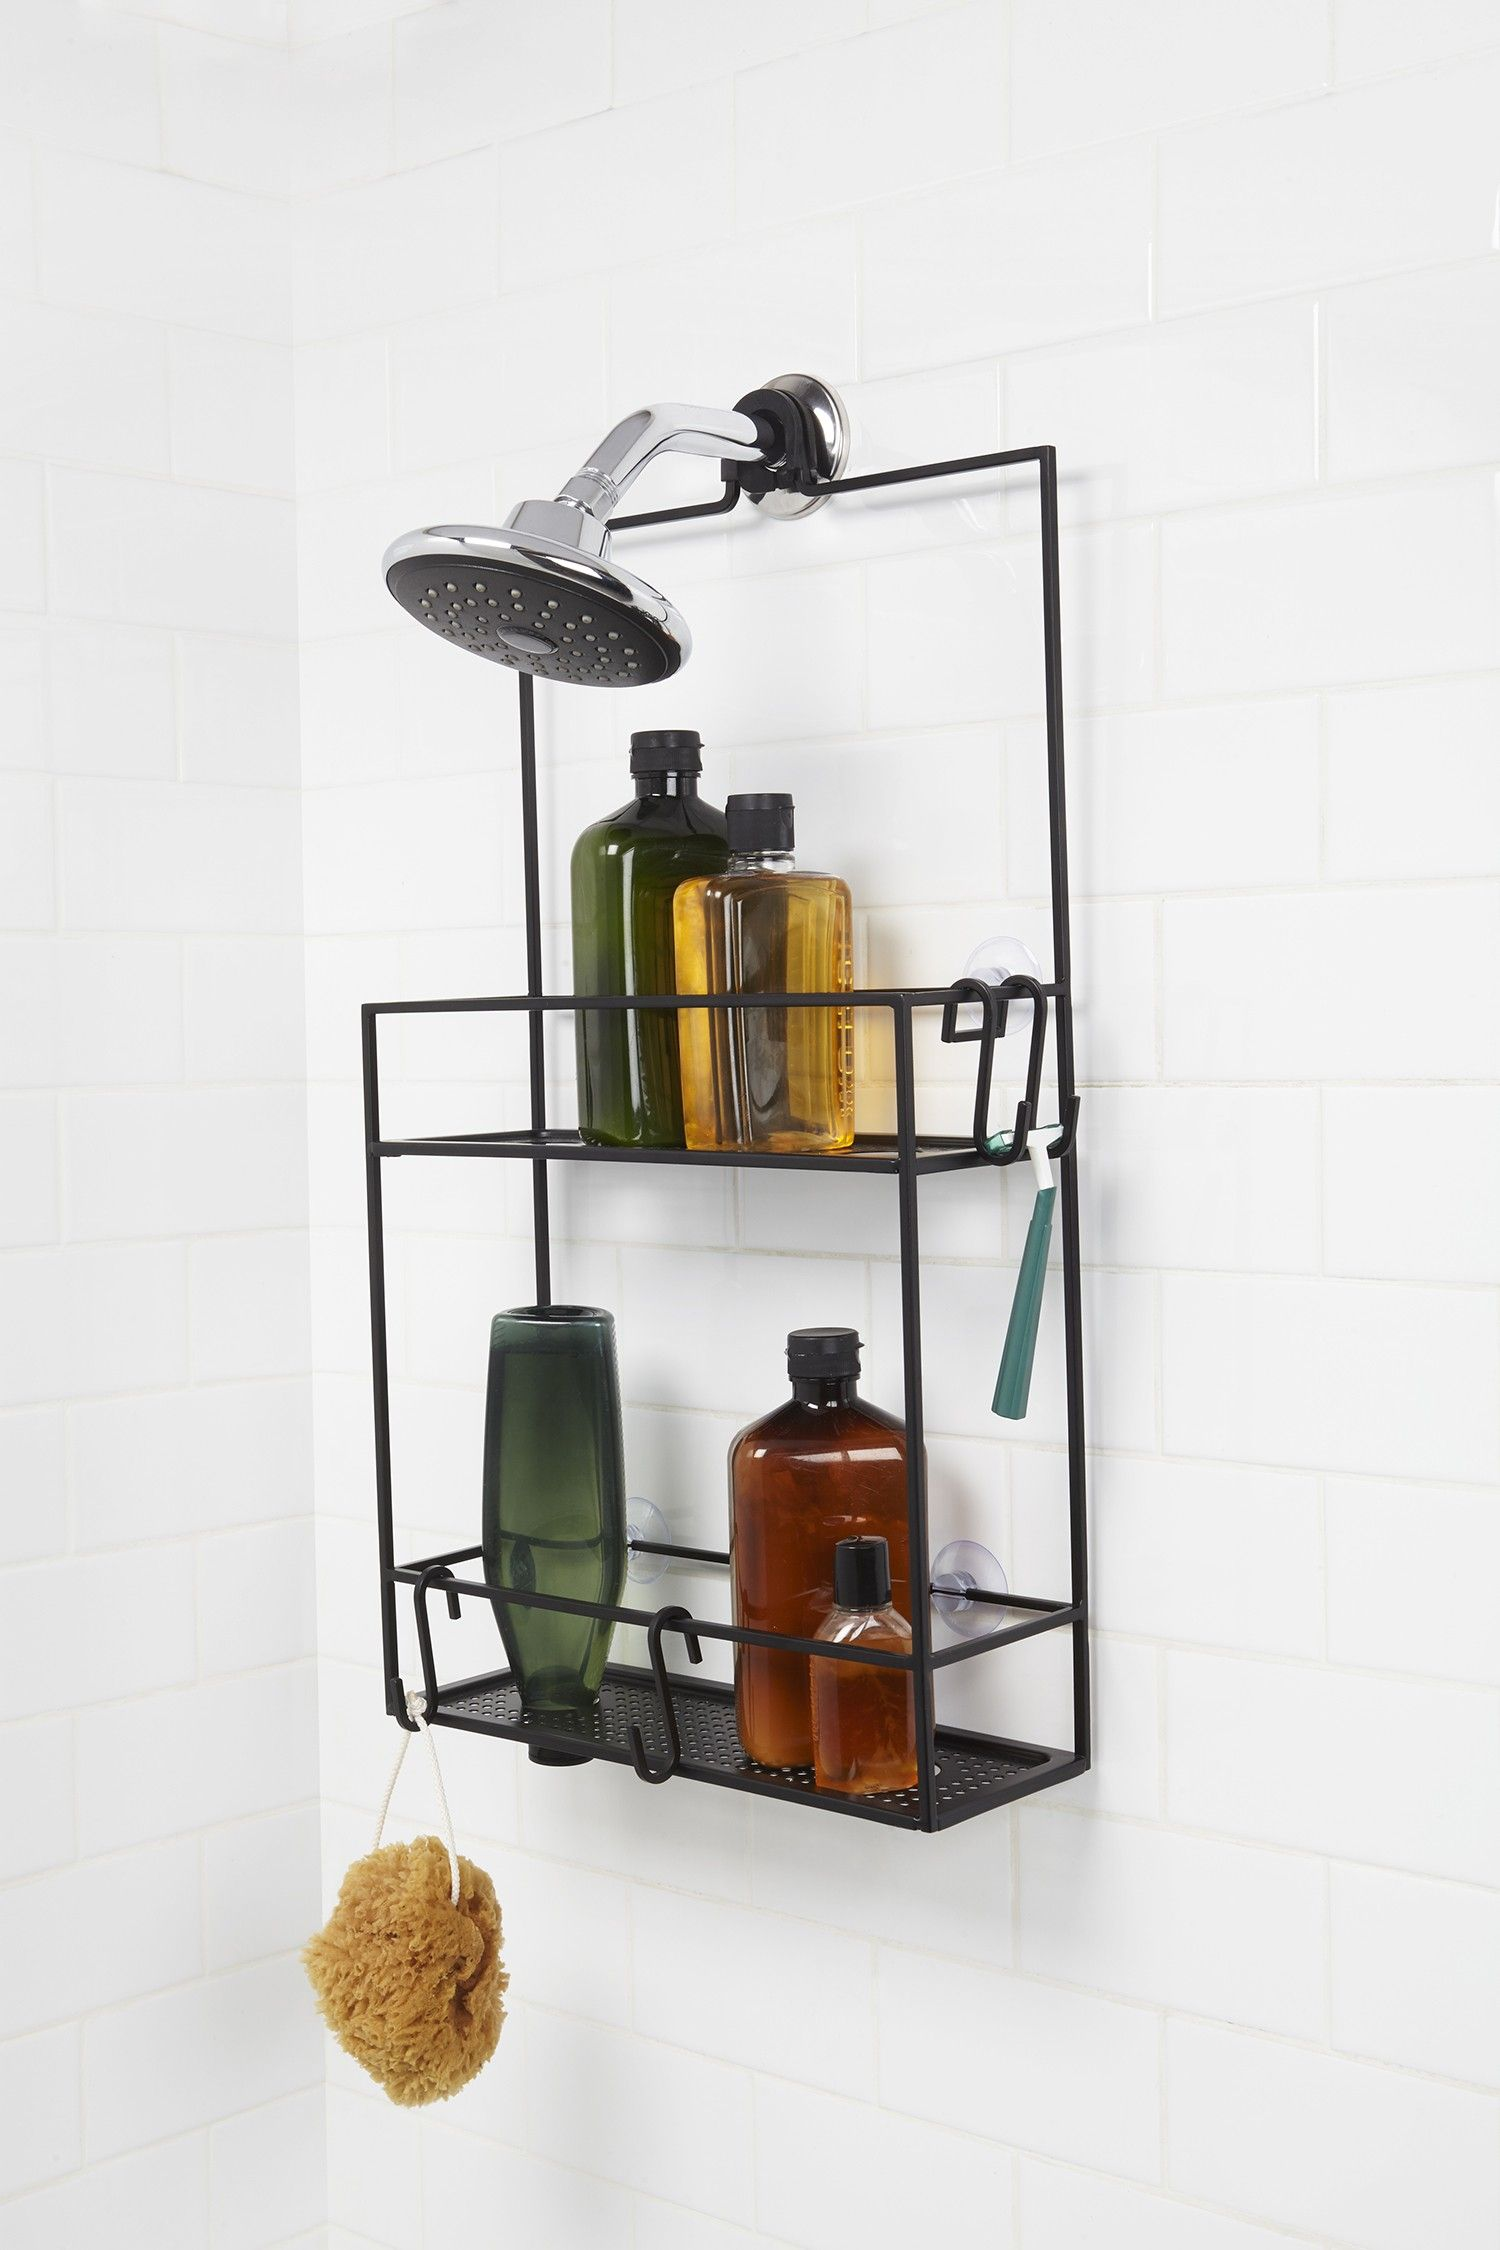 CUBIKO SHOWER CADDY BLACK | 鞋架 | Pinterest | Metal shelves ...